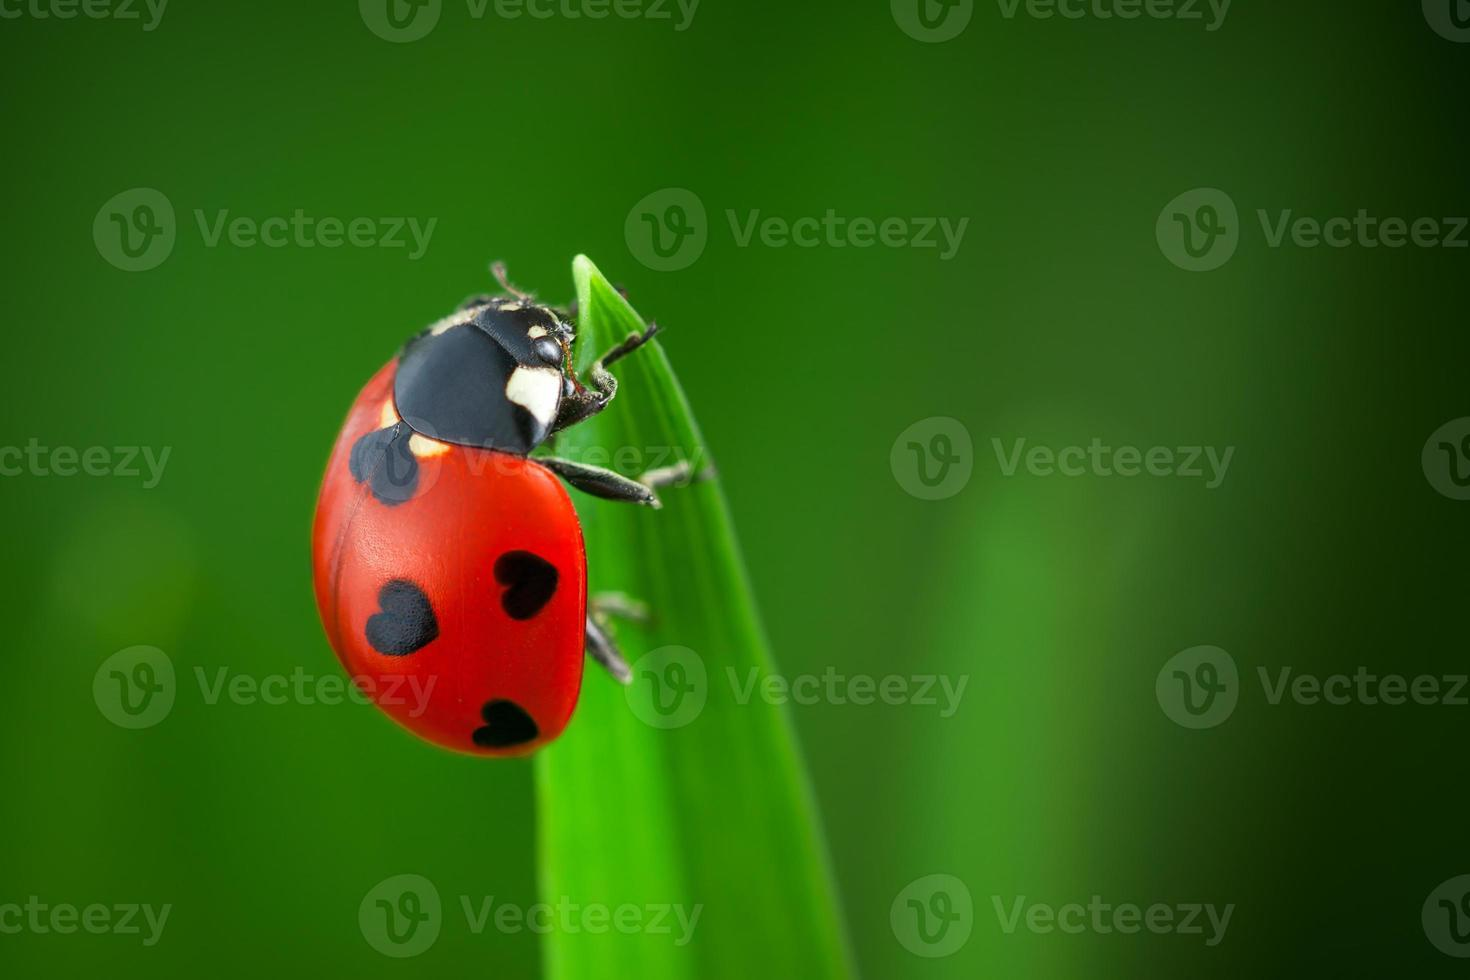 Ladybug With Hearts on Back photo